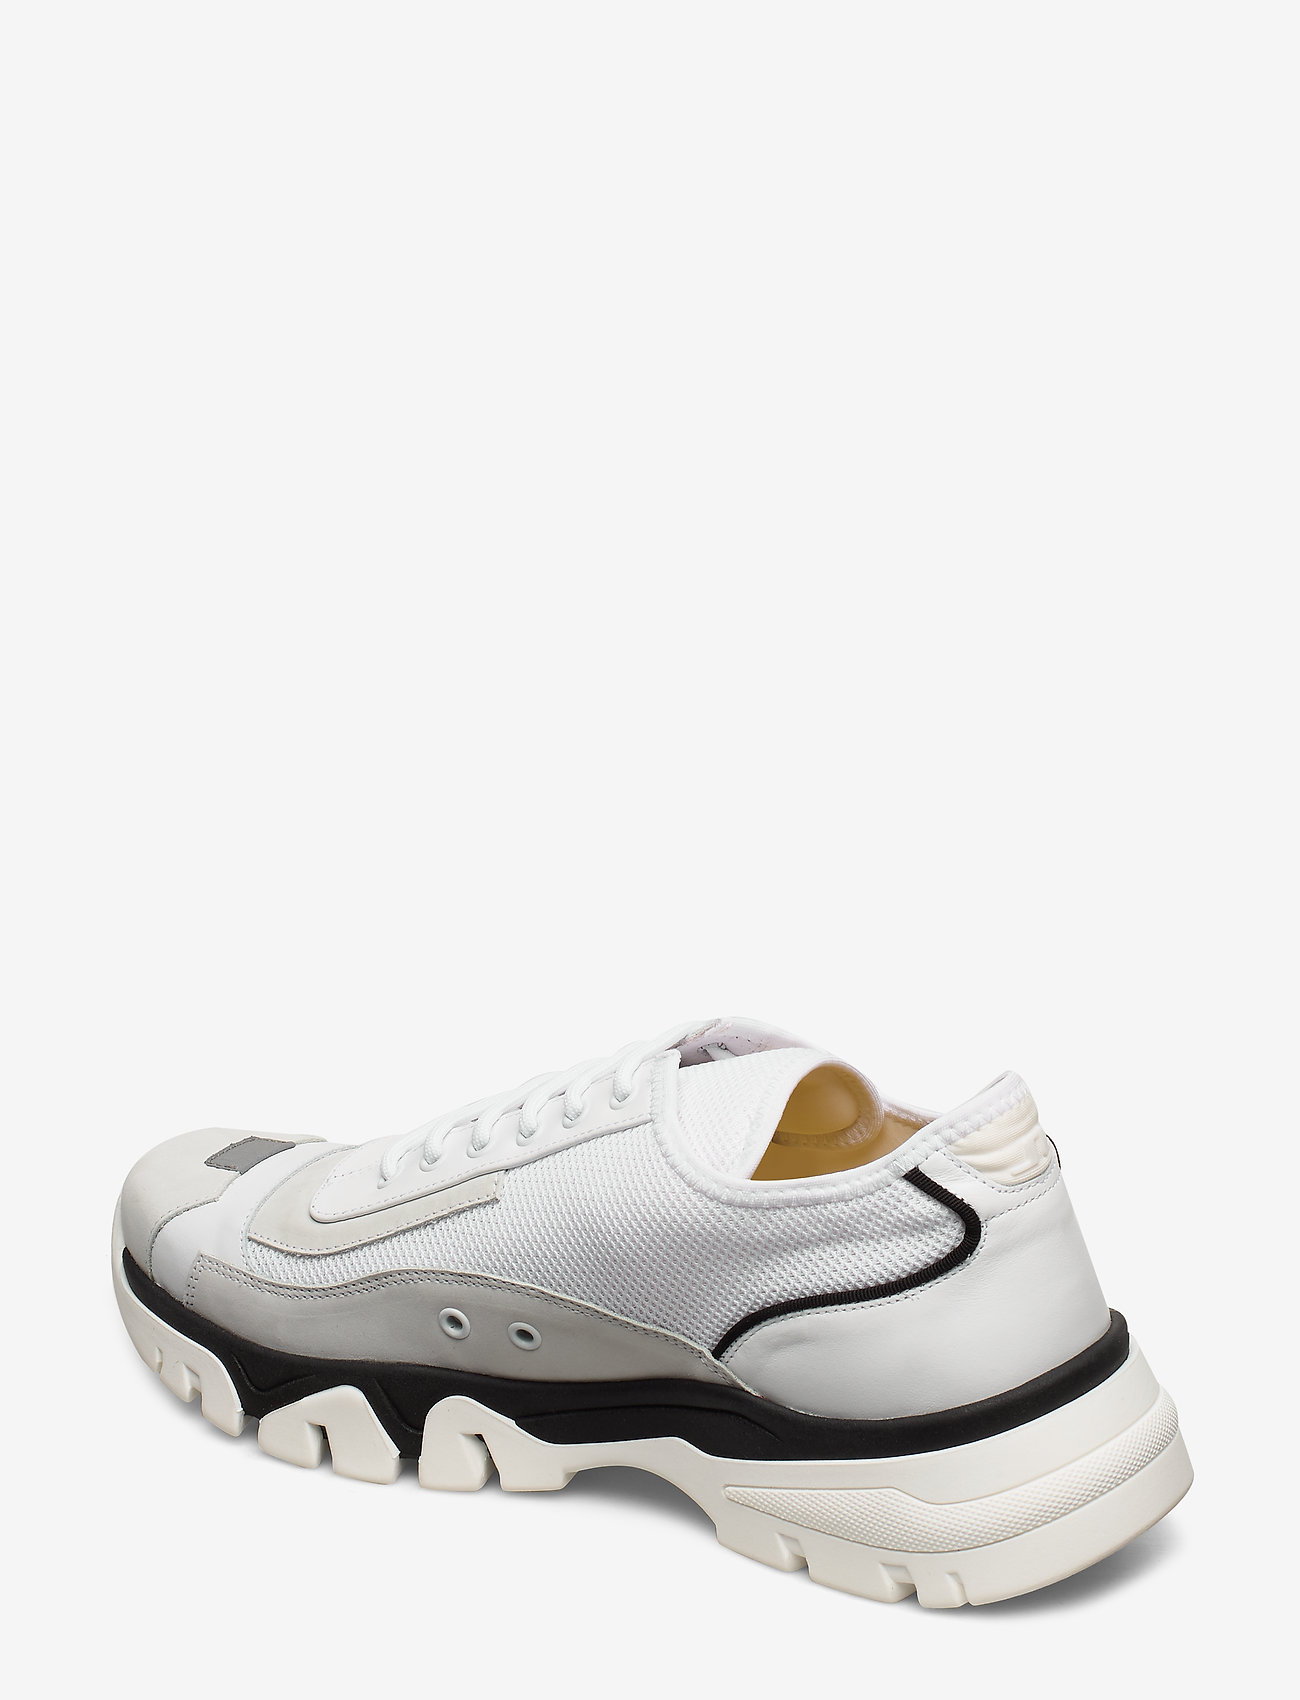 Rory Lt Sneaker-mixed Fabric (White) - J. Lindeberg